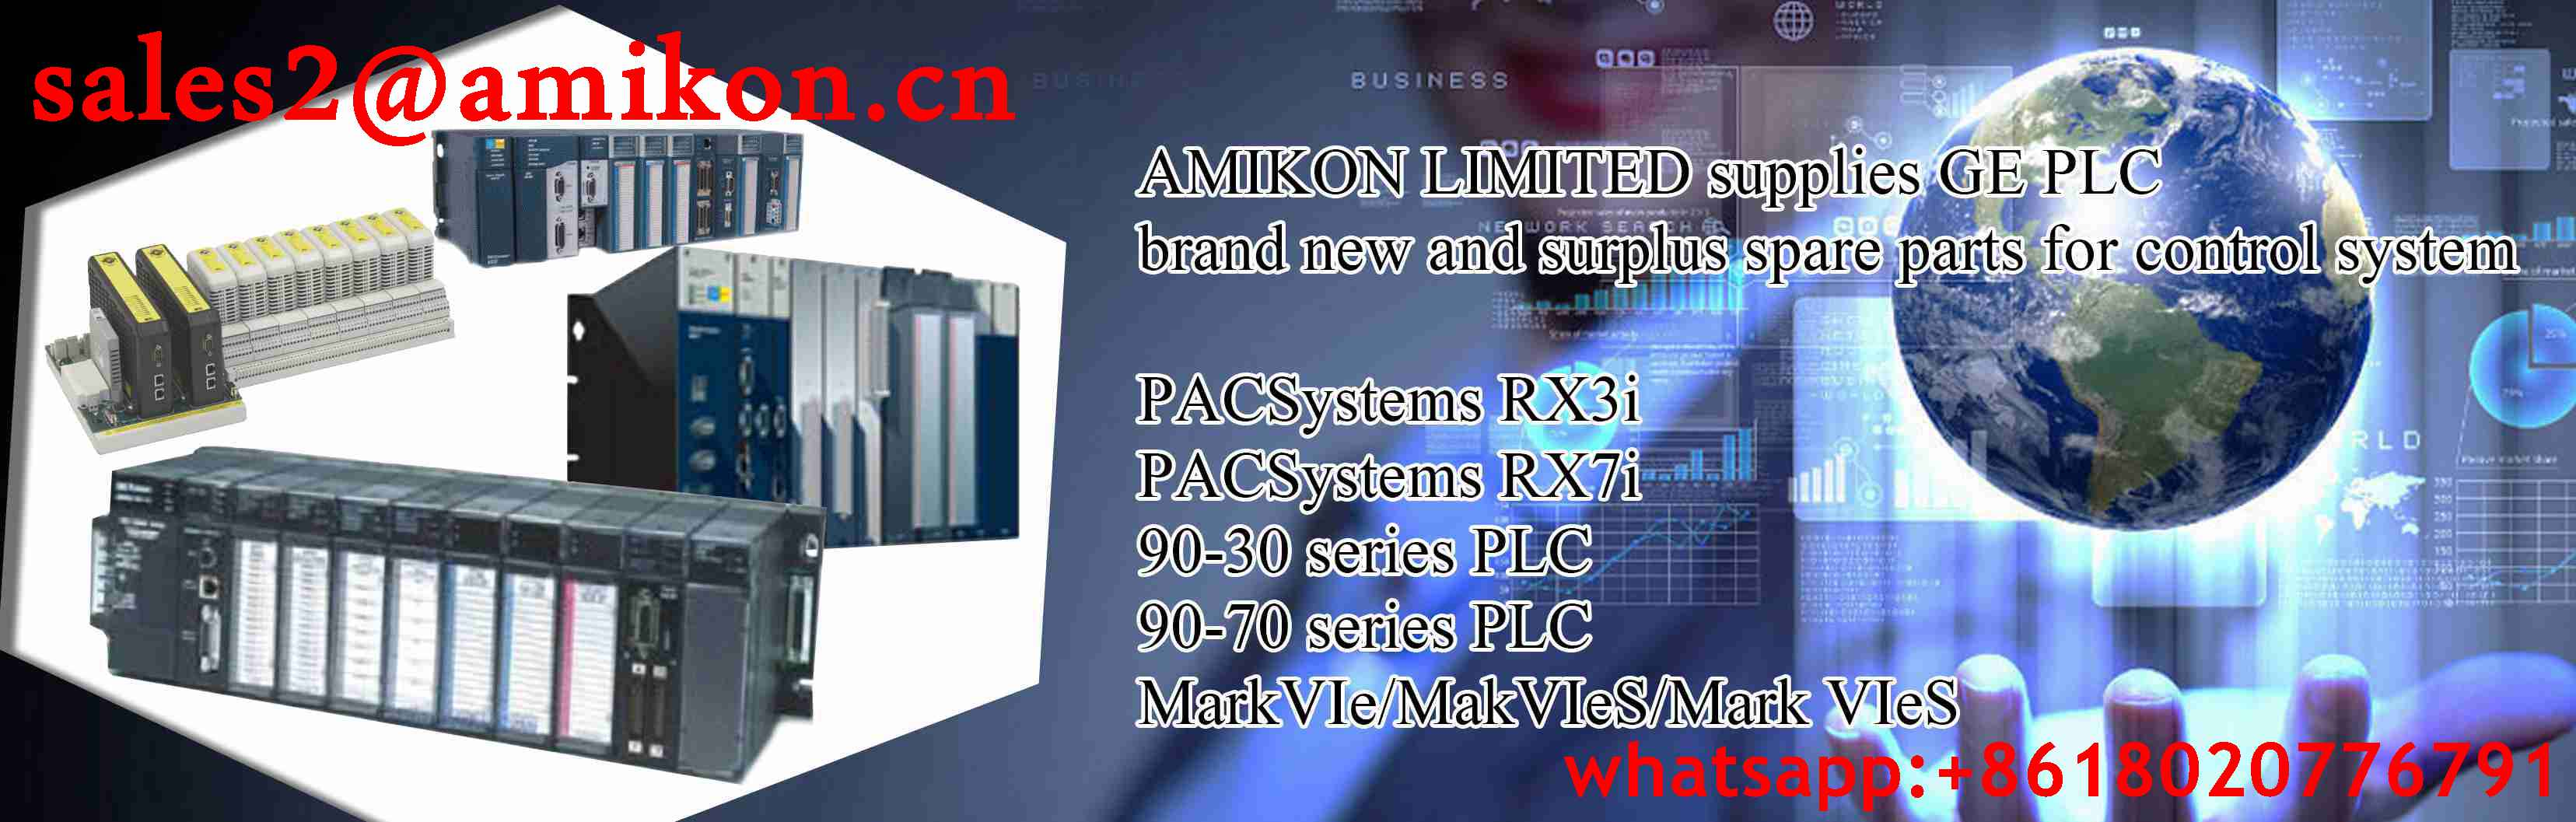 IC697MDL250 GE General Electric sales2@amikon.cn PLC DCS Industry Control System Module